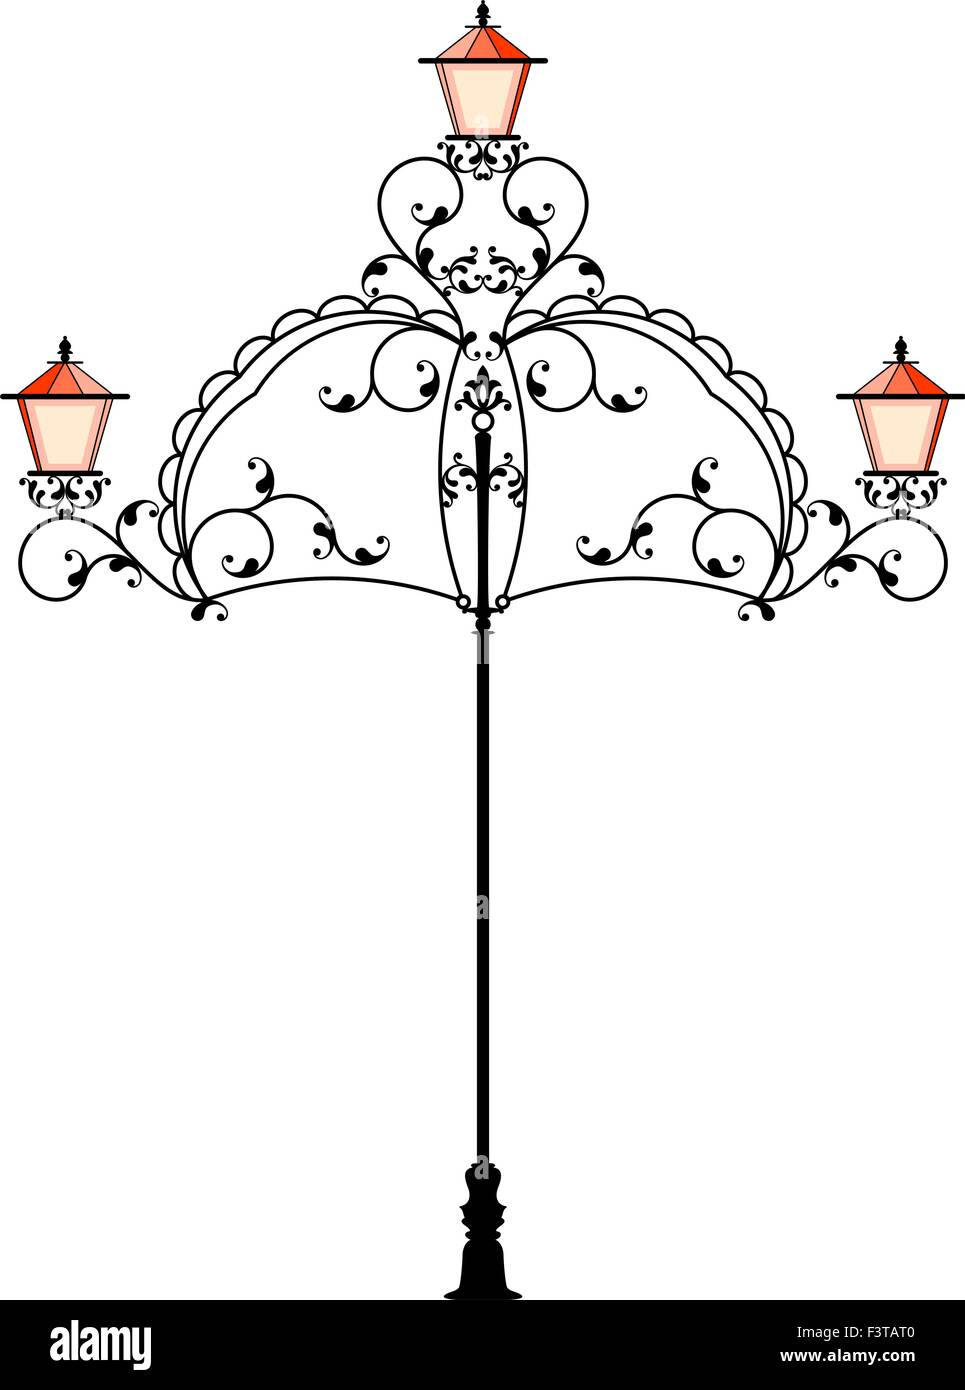 Wrought Iron Street Lamp Post Vector Art Stock Vector Art ... for Street Lamp Post Vector  199fiz